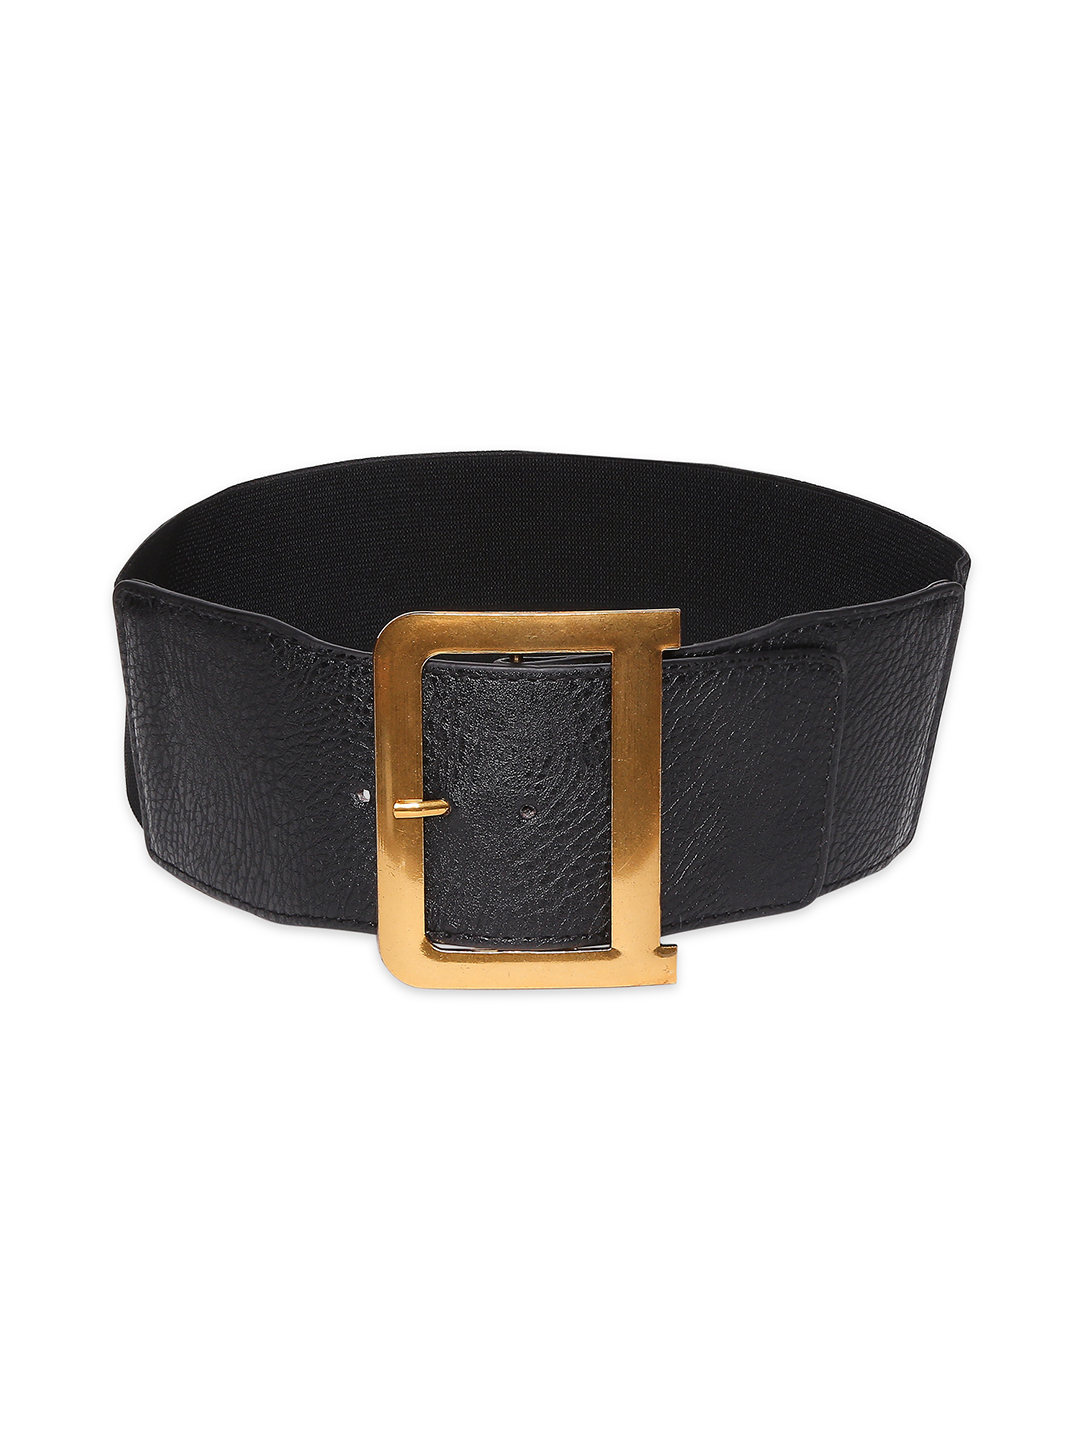 Belts-Black And Beautiful Belt2